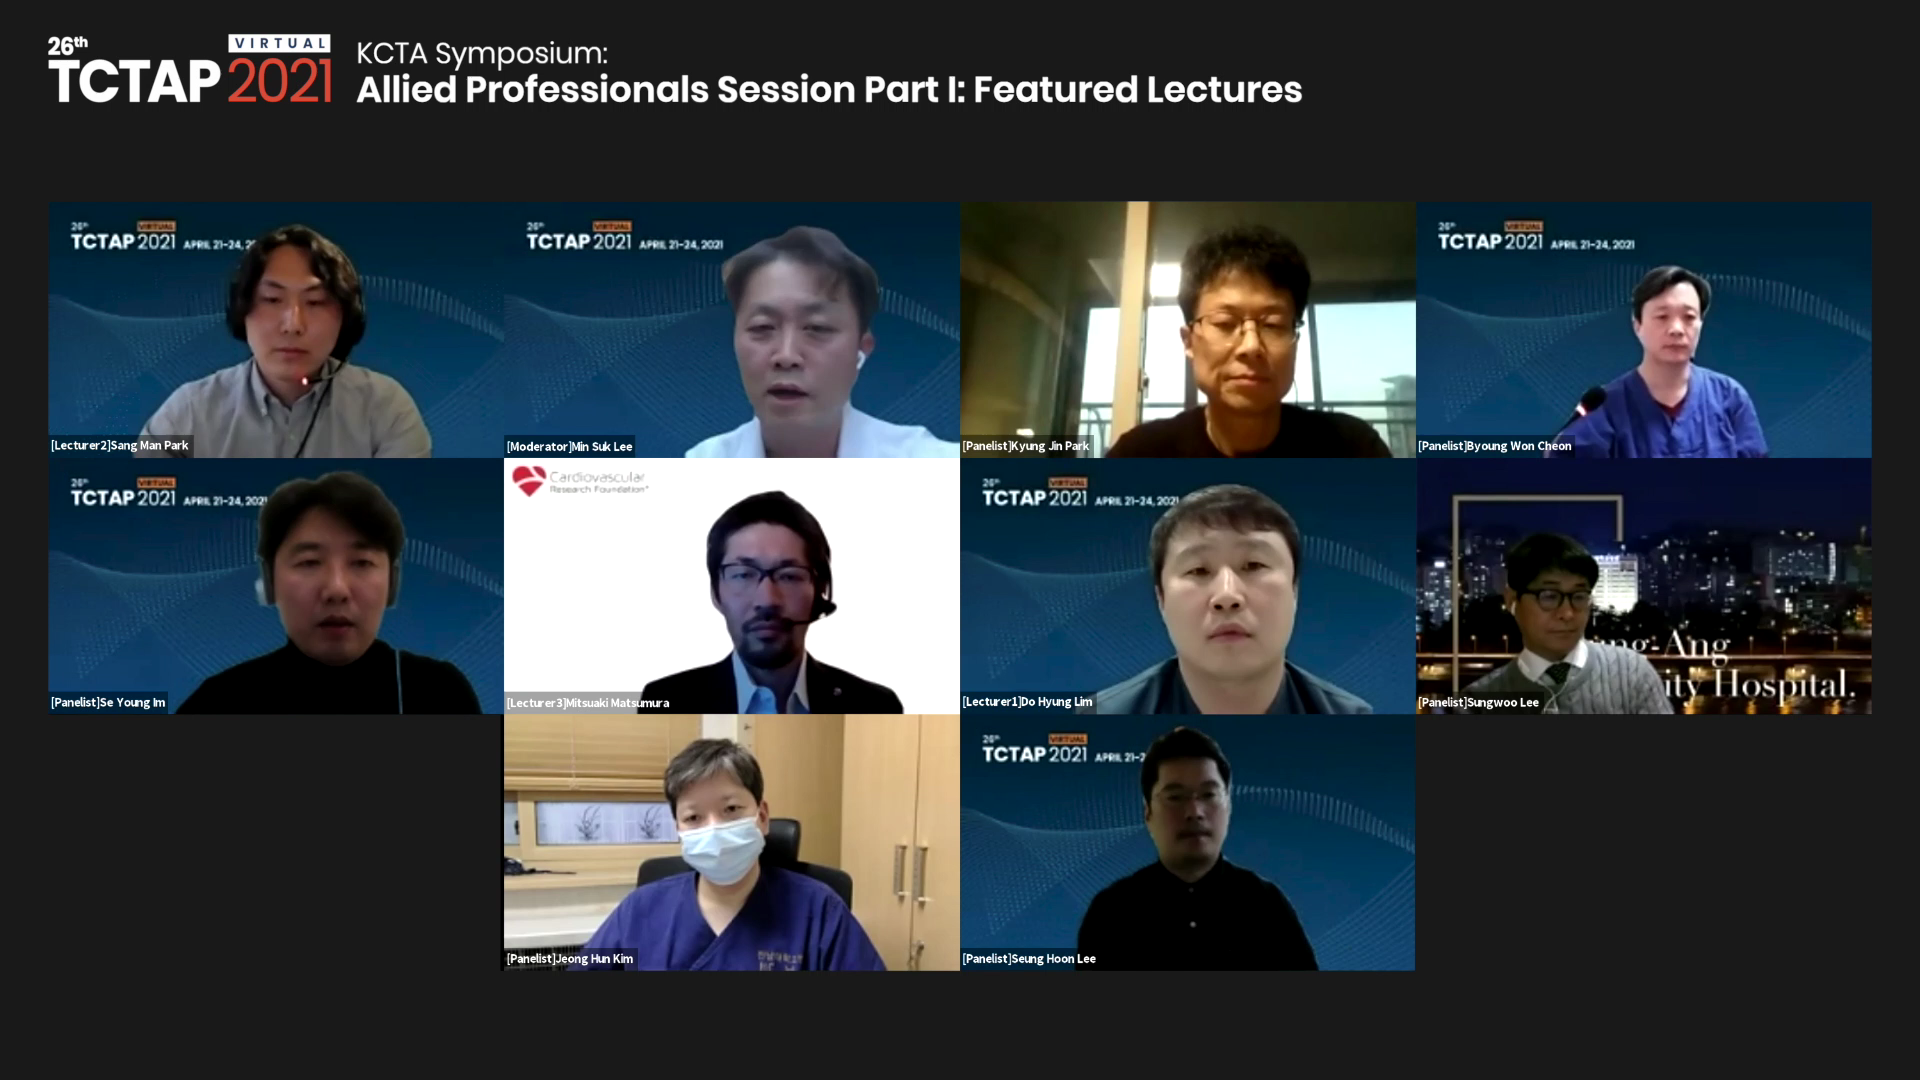 [TCTAP 2021 Virtual] KCTA Symposium: Allied Professionals Session - Part I: Featured Lectures